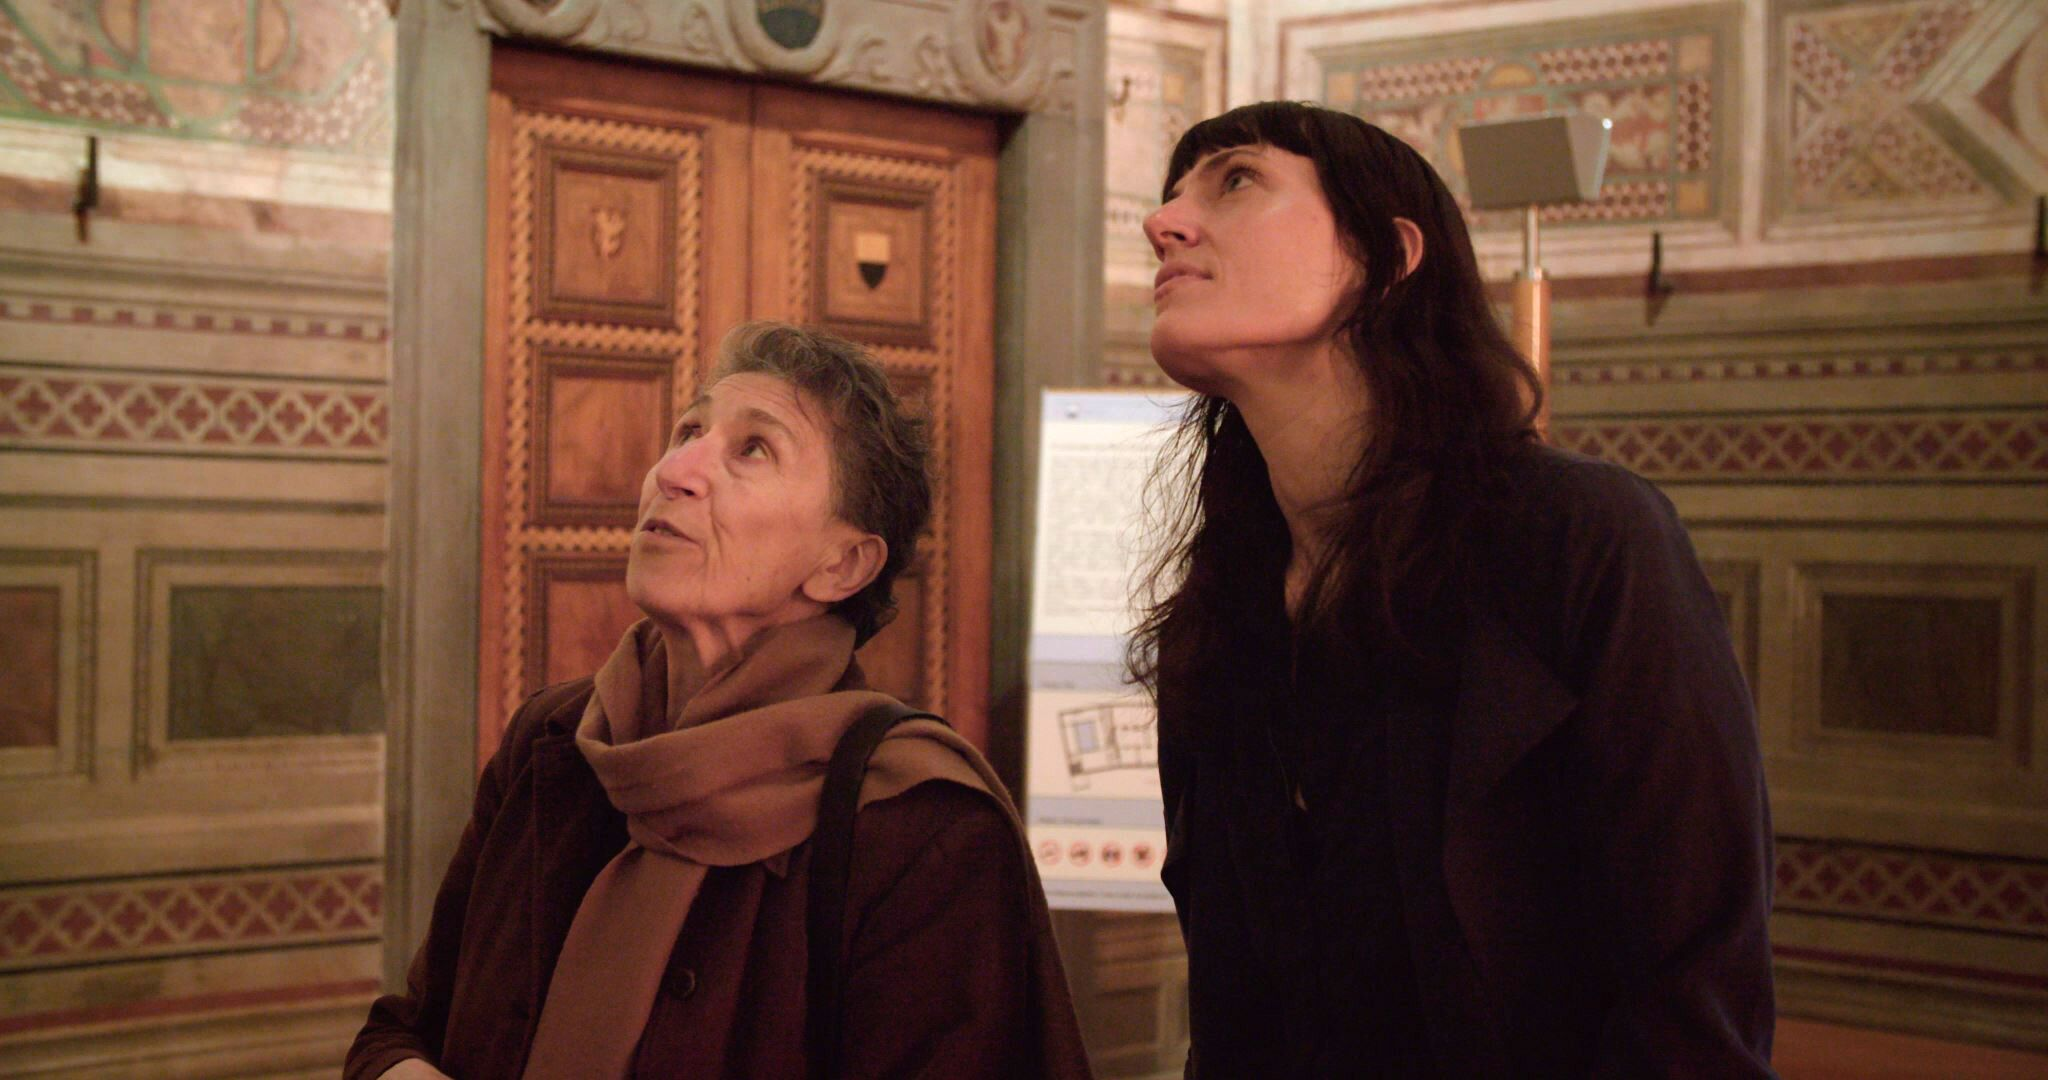 Sociologist Silvia Federici and filmmaker Astra Taylor